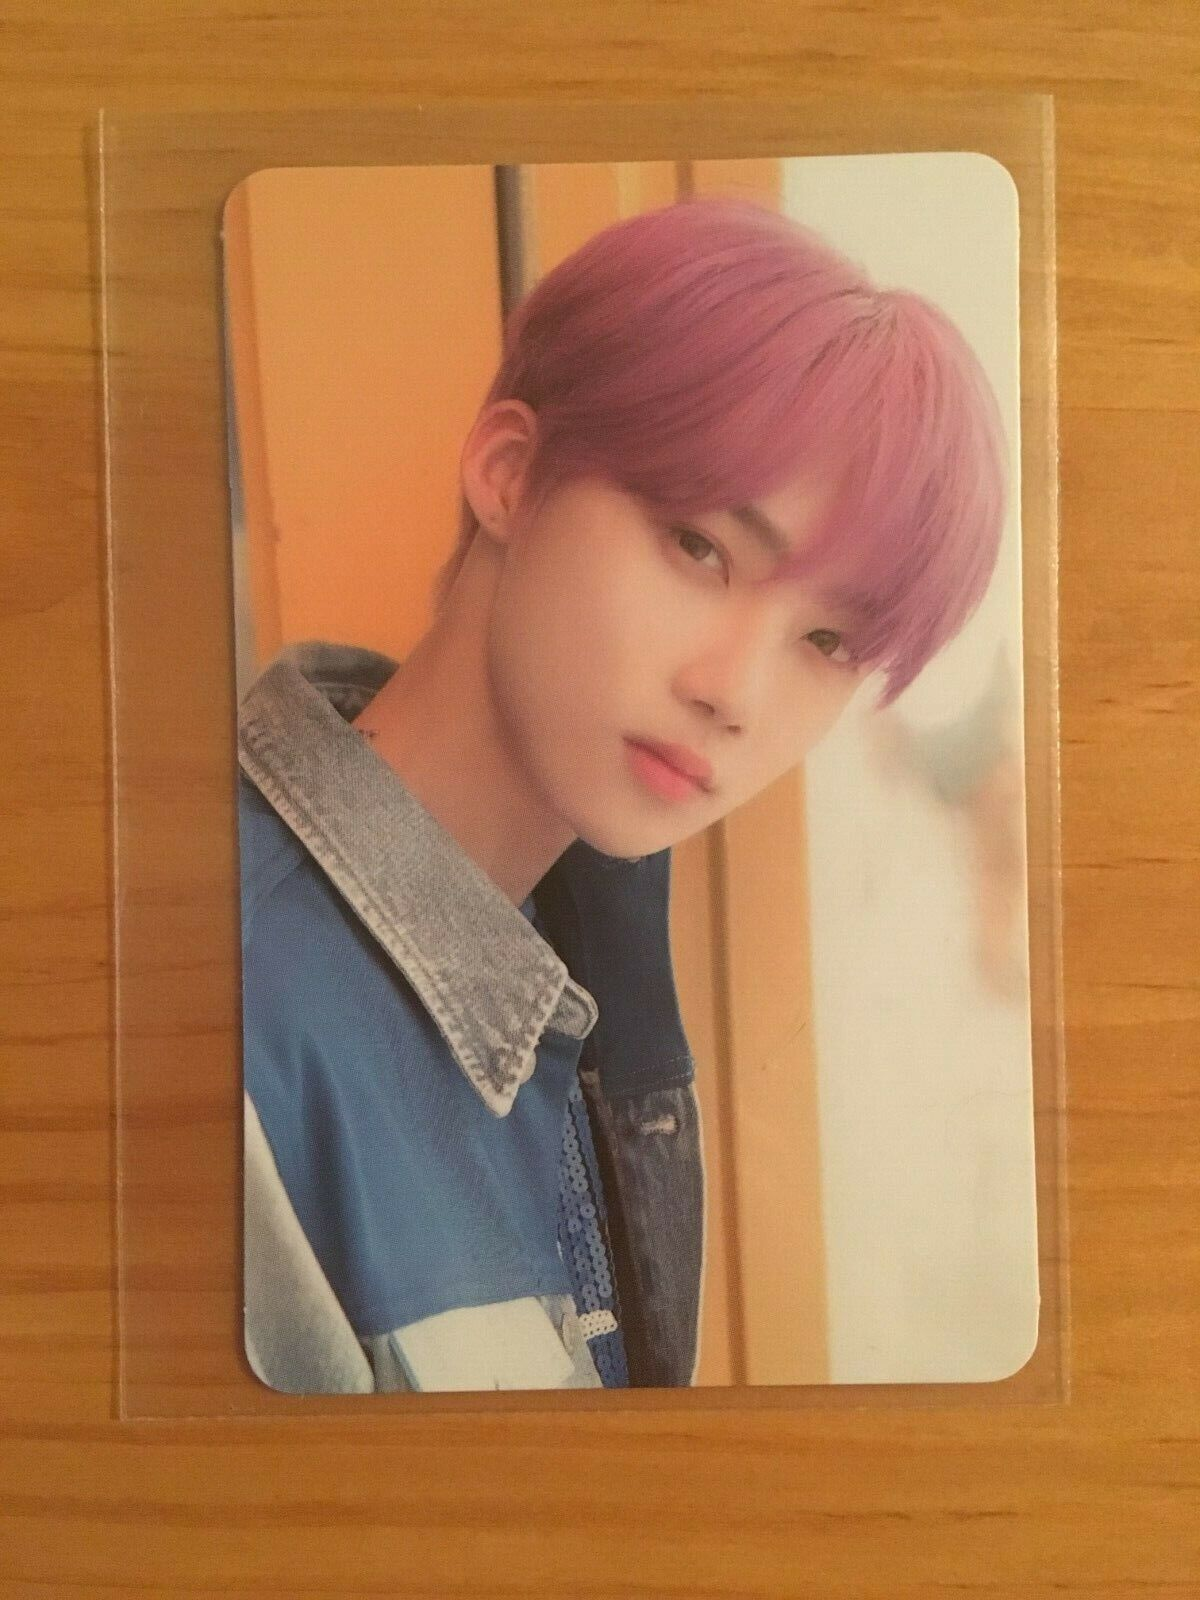 THE BOYZ - DREAMLIKE Official Photocards (MMT -limited- + DREAMLIKE + DAY + DIY) New [MMT signed]